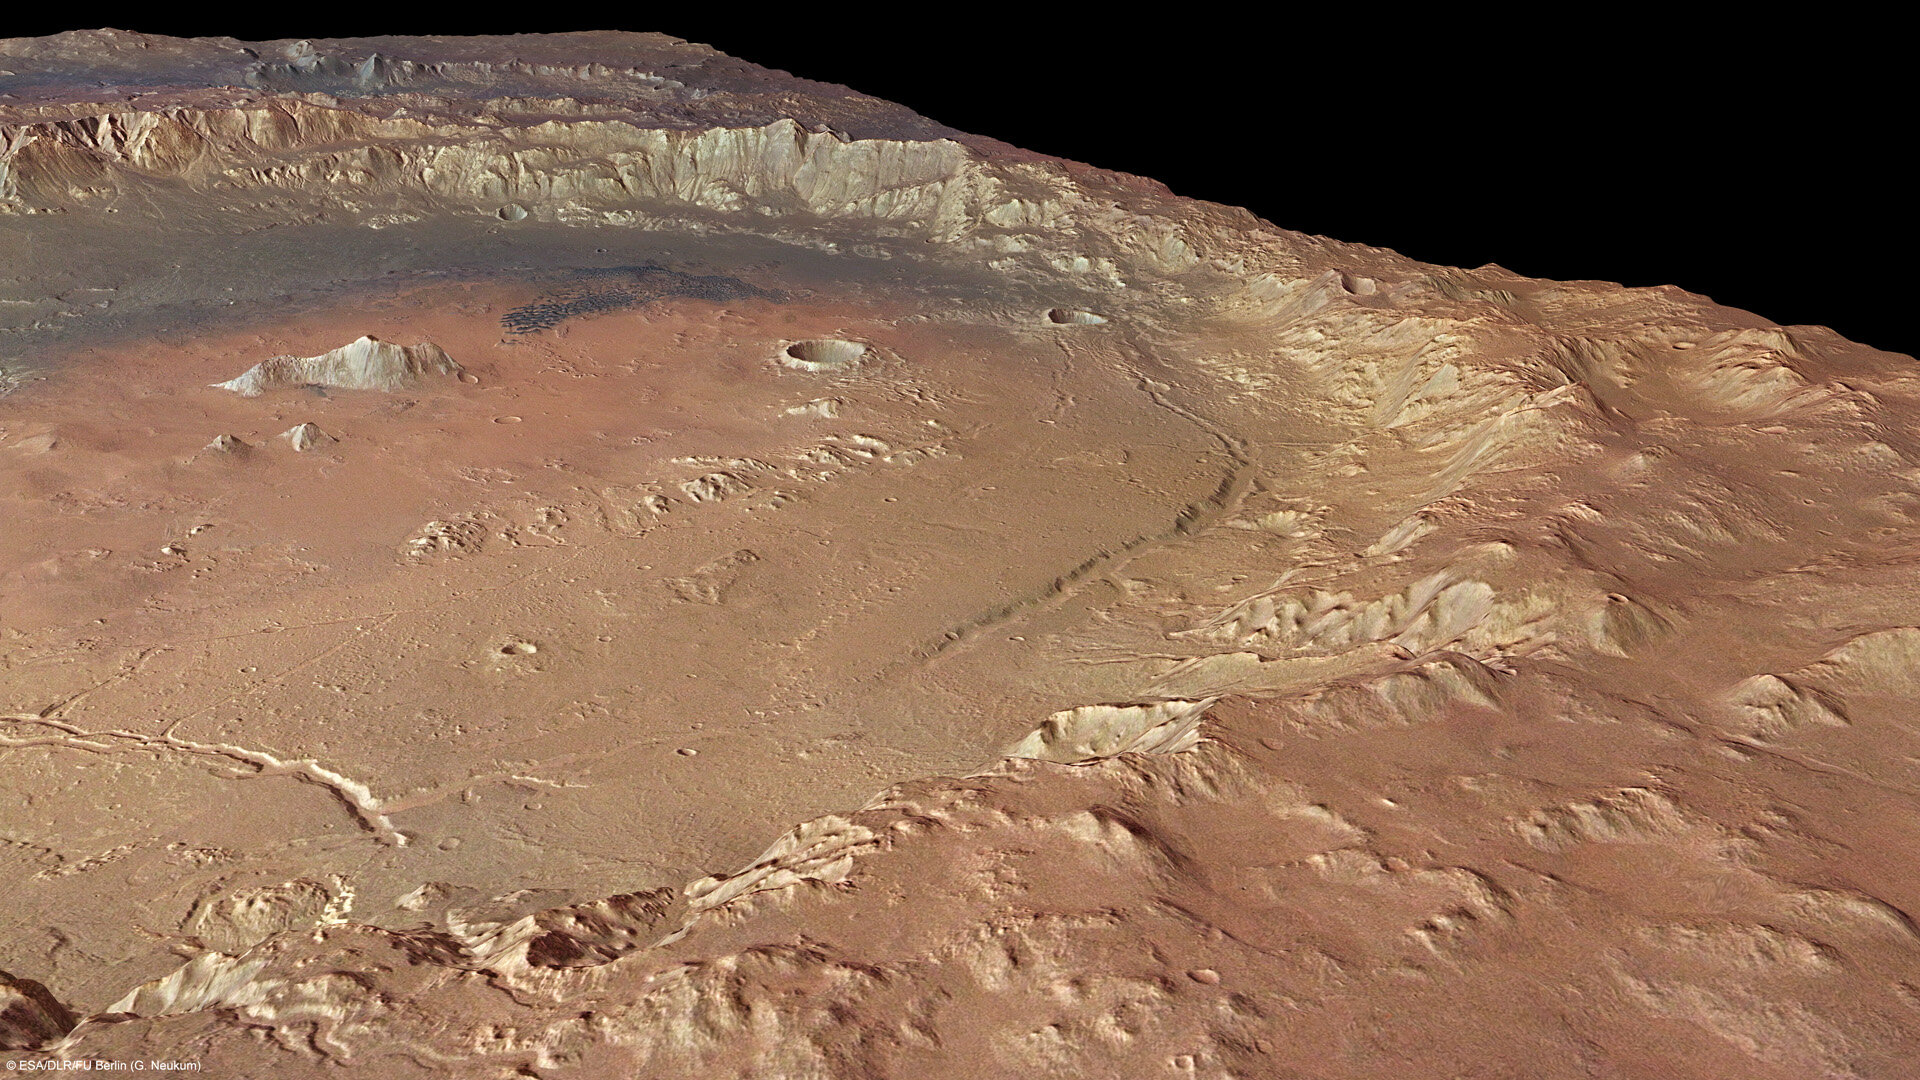 Holden crater in perspective